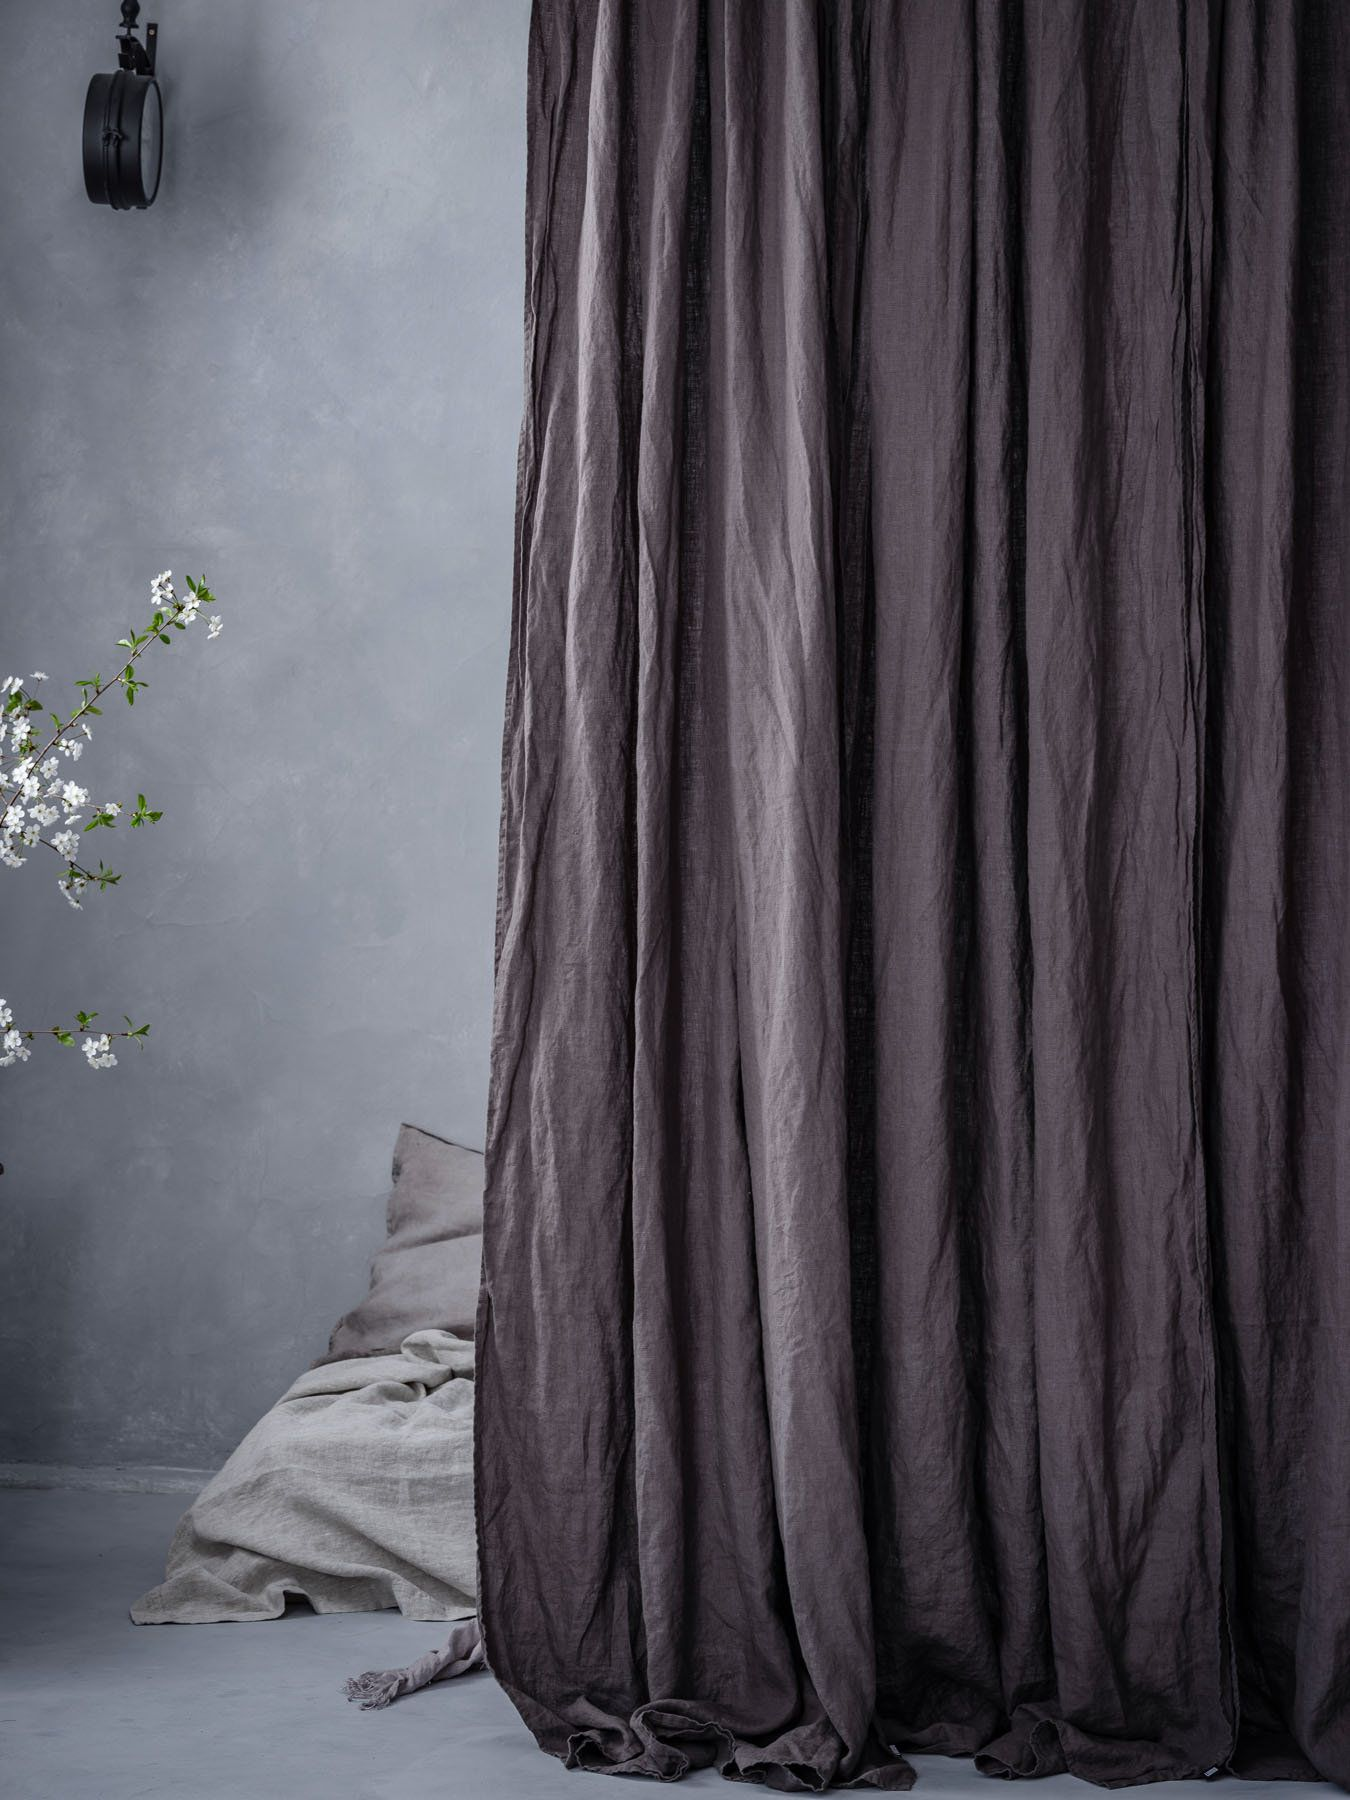 Dark Gray Linen Curtains Washed And Pre Shrunk Charcoal Medium Weight Linen Curtain Panel Smoke Gray Linen Curtain Drop Grey Linen Curtains Linen Curtains Dark Gray Linen